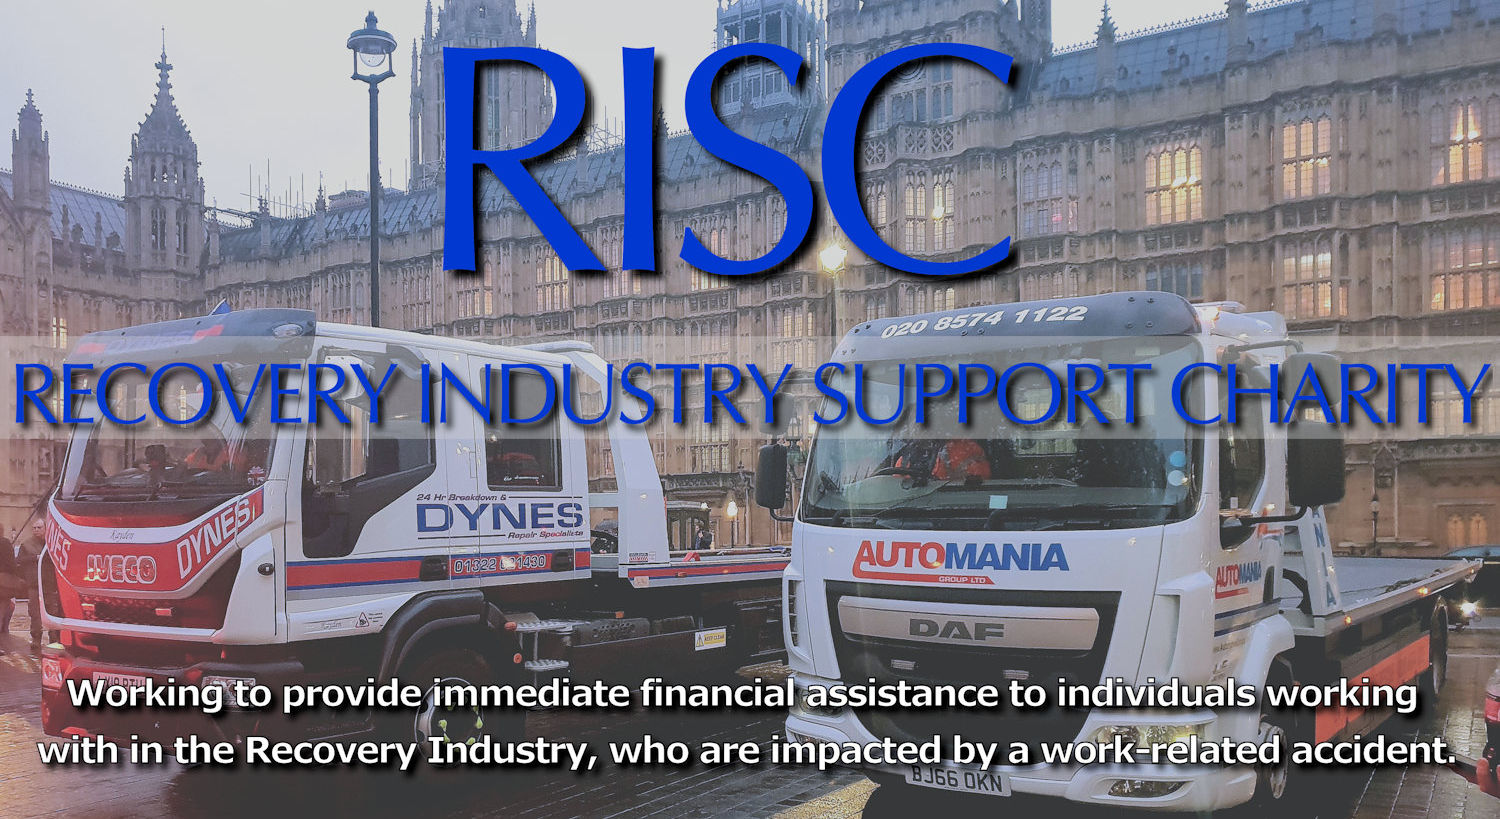 RISC - Recovery Industry Support Charity